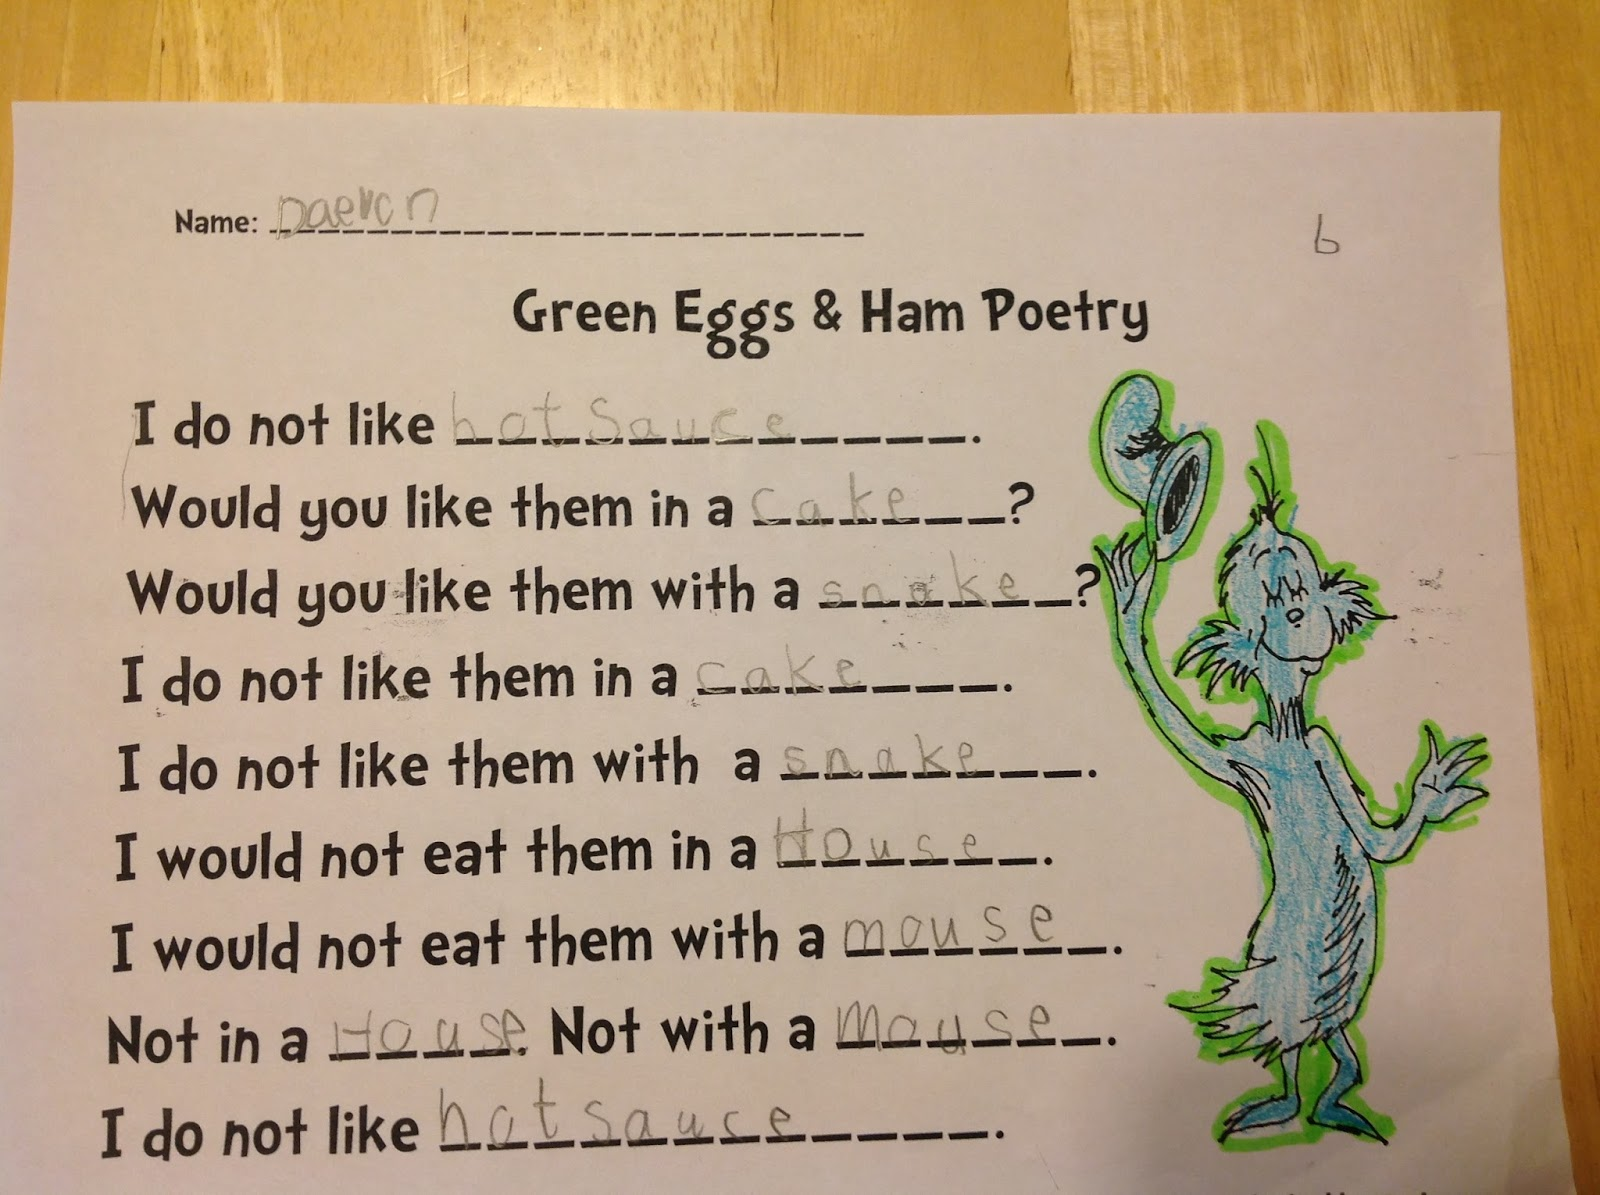 i will not eat green eggs and ham